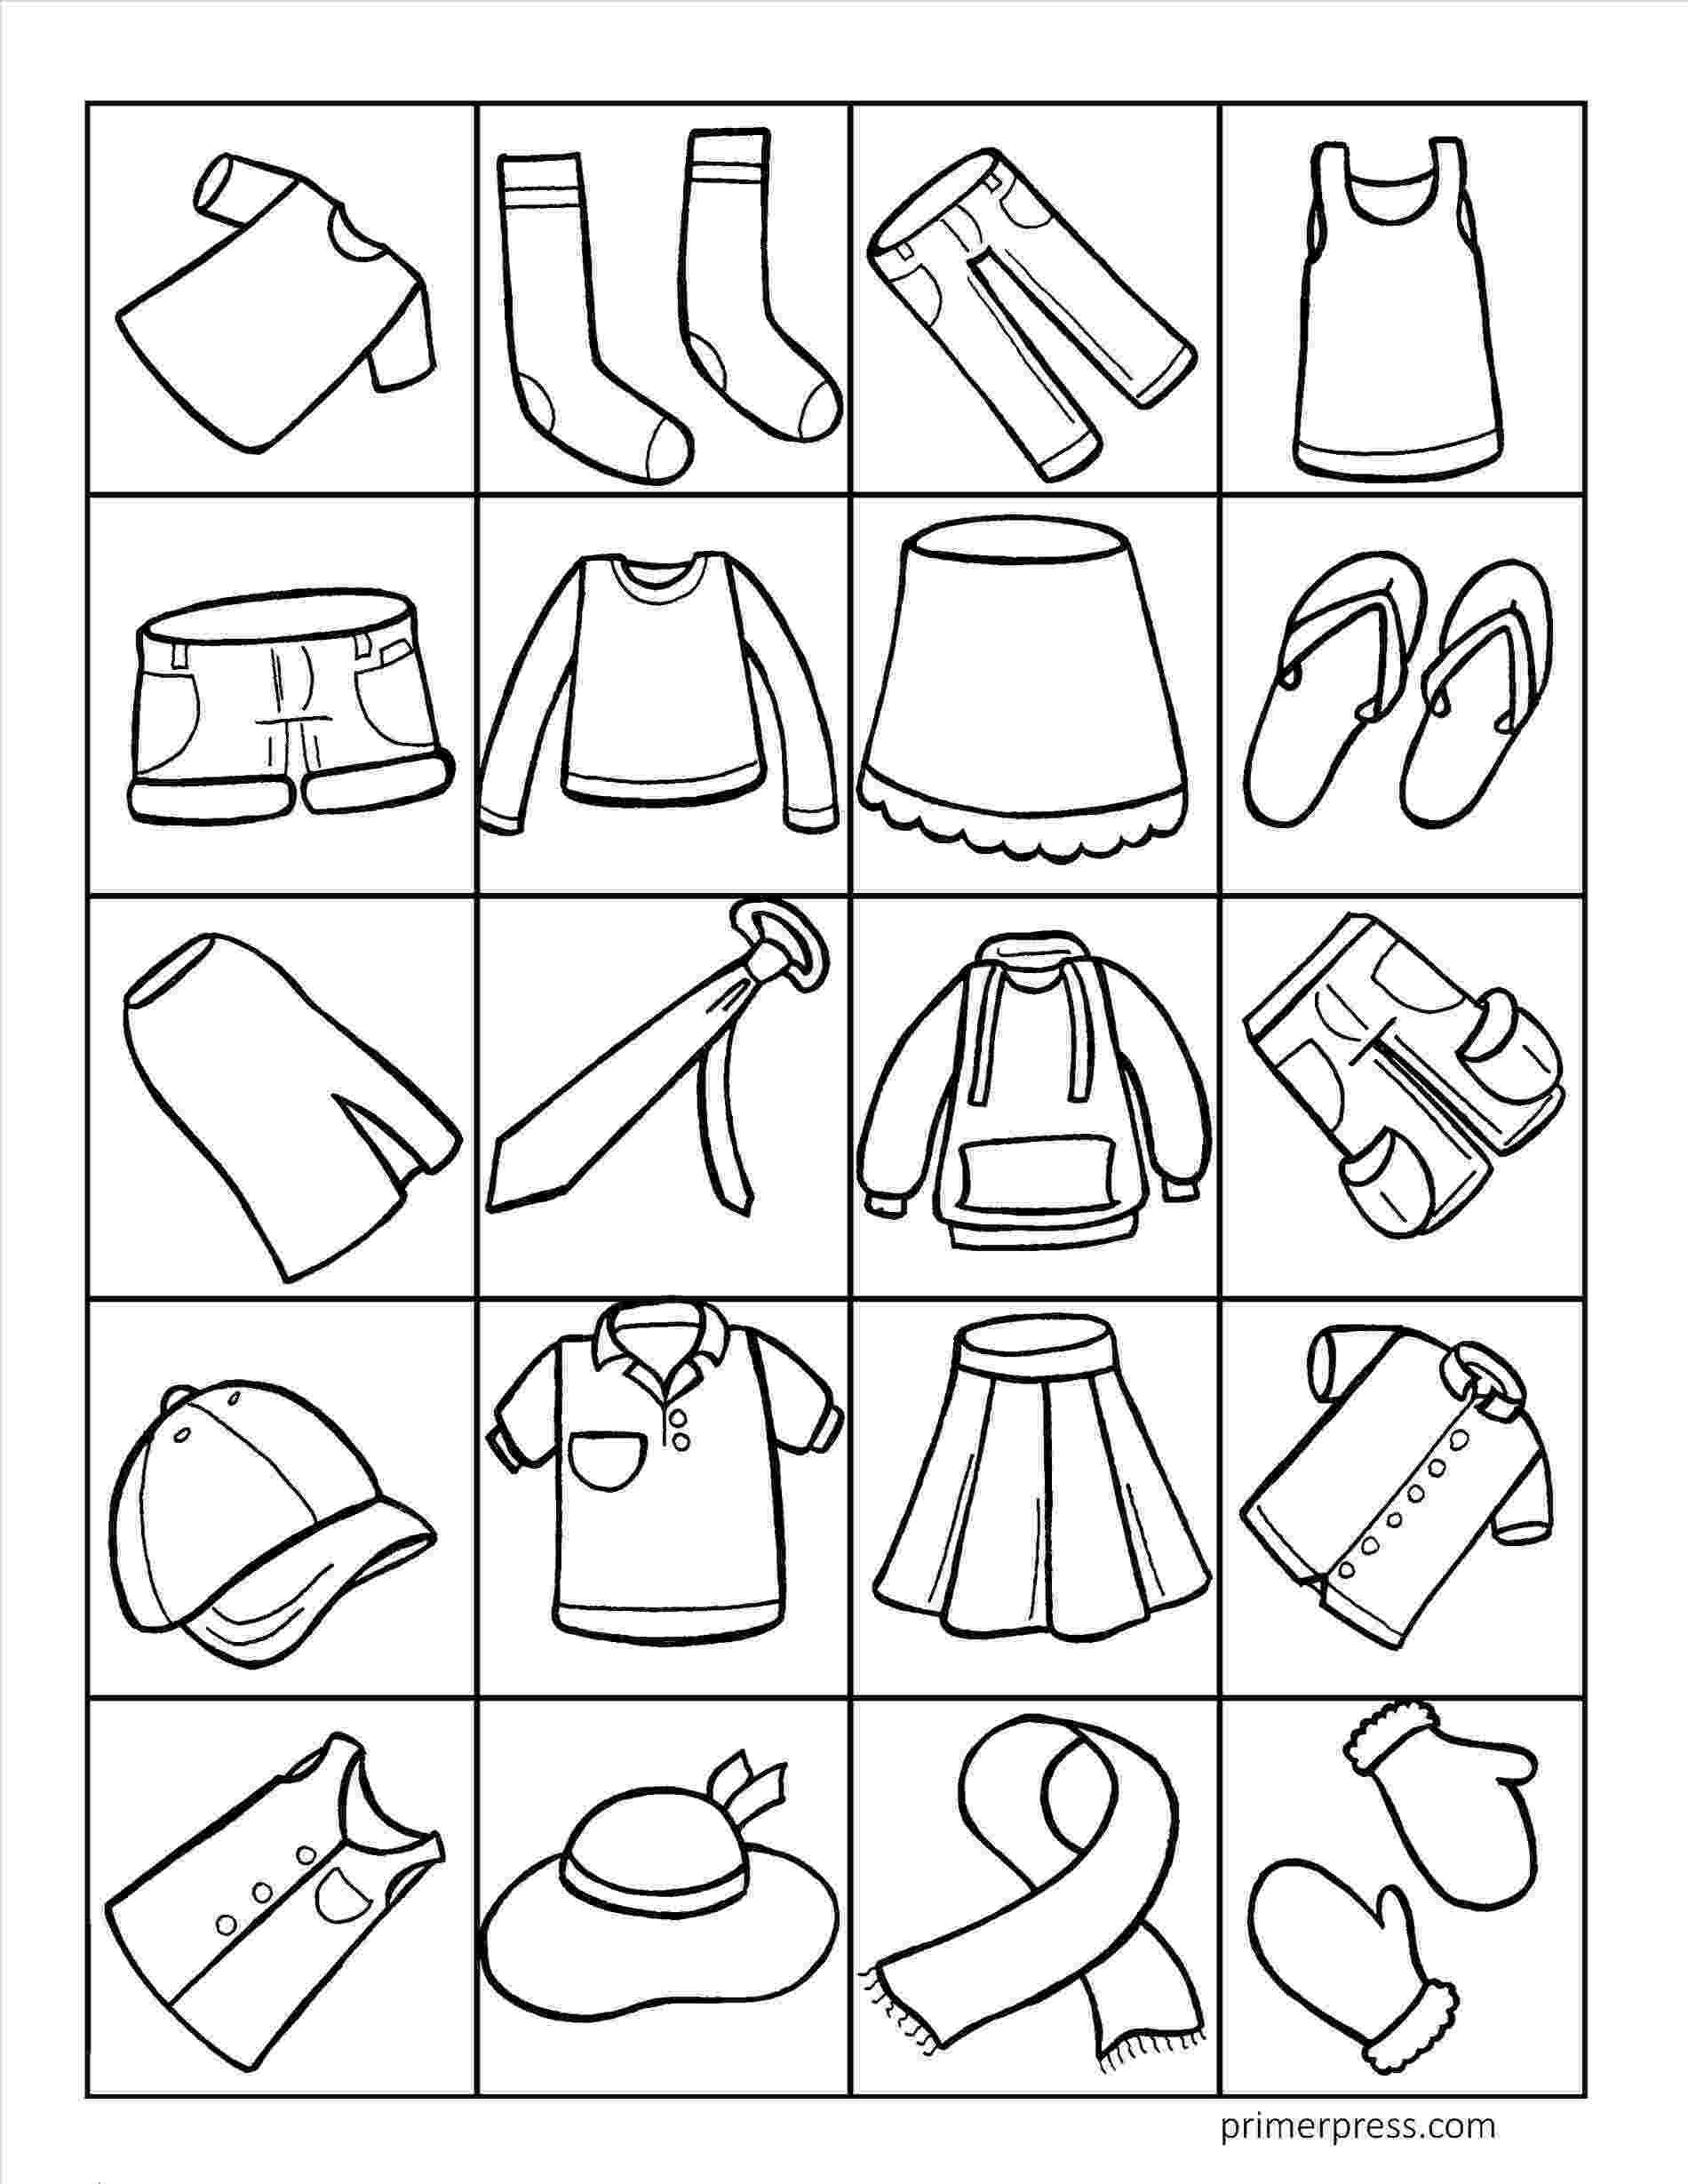 colouring clothes enjoyable ideas clothes coloring pages winter page free colouring clothes